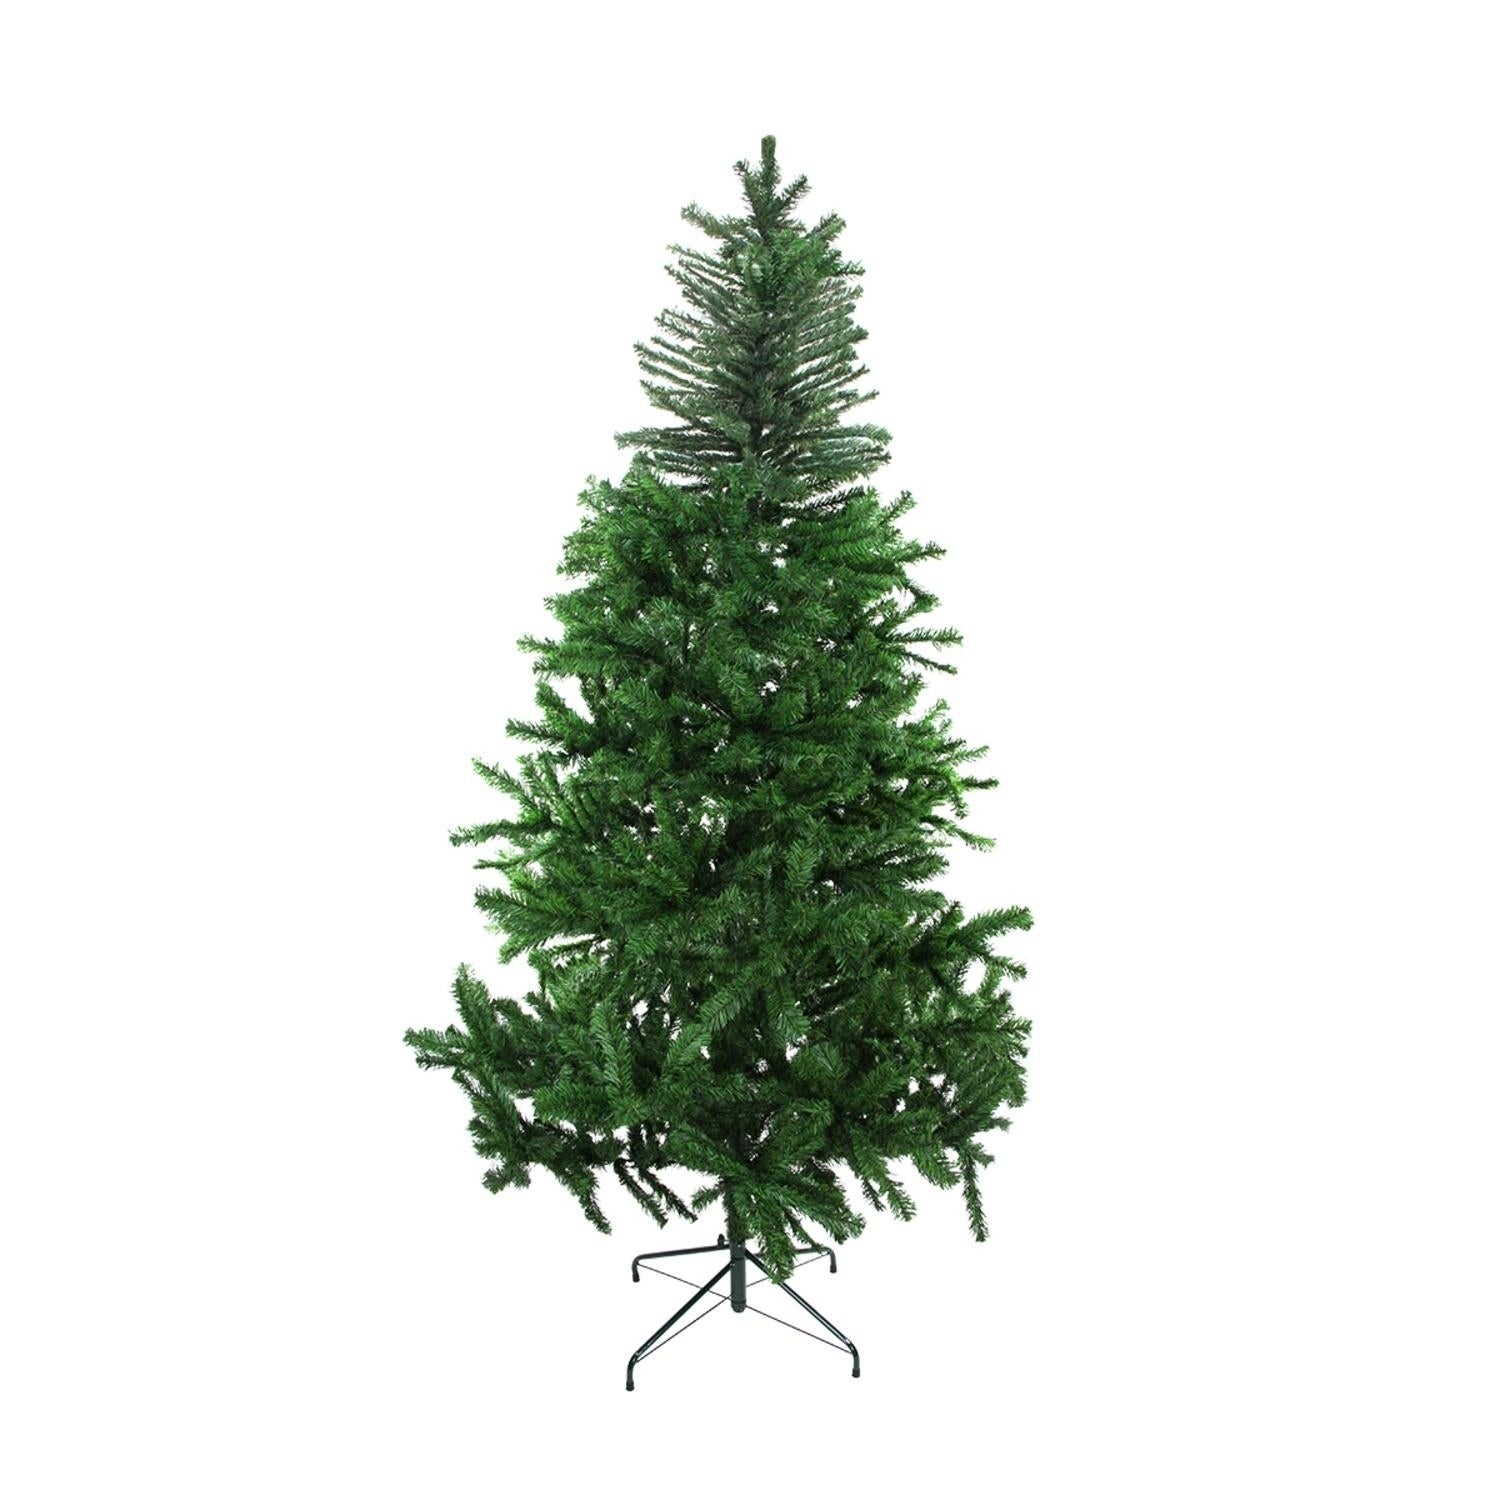 DARICE 7.5' Two-Tone Balsam Fir Artificial Christmas Tree...